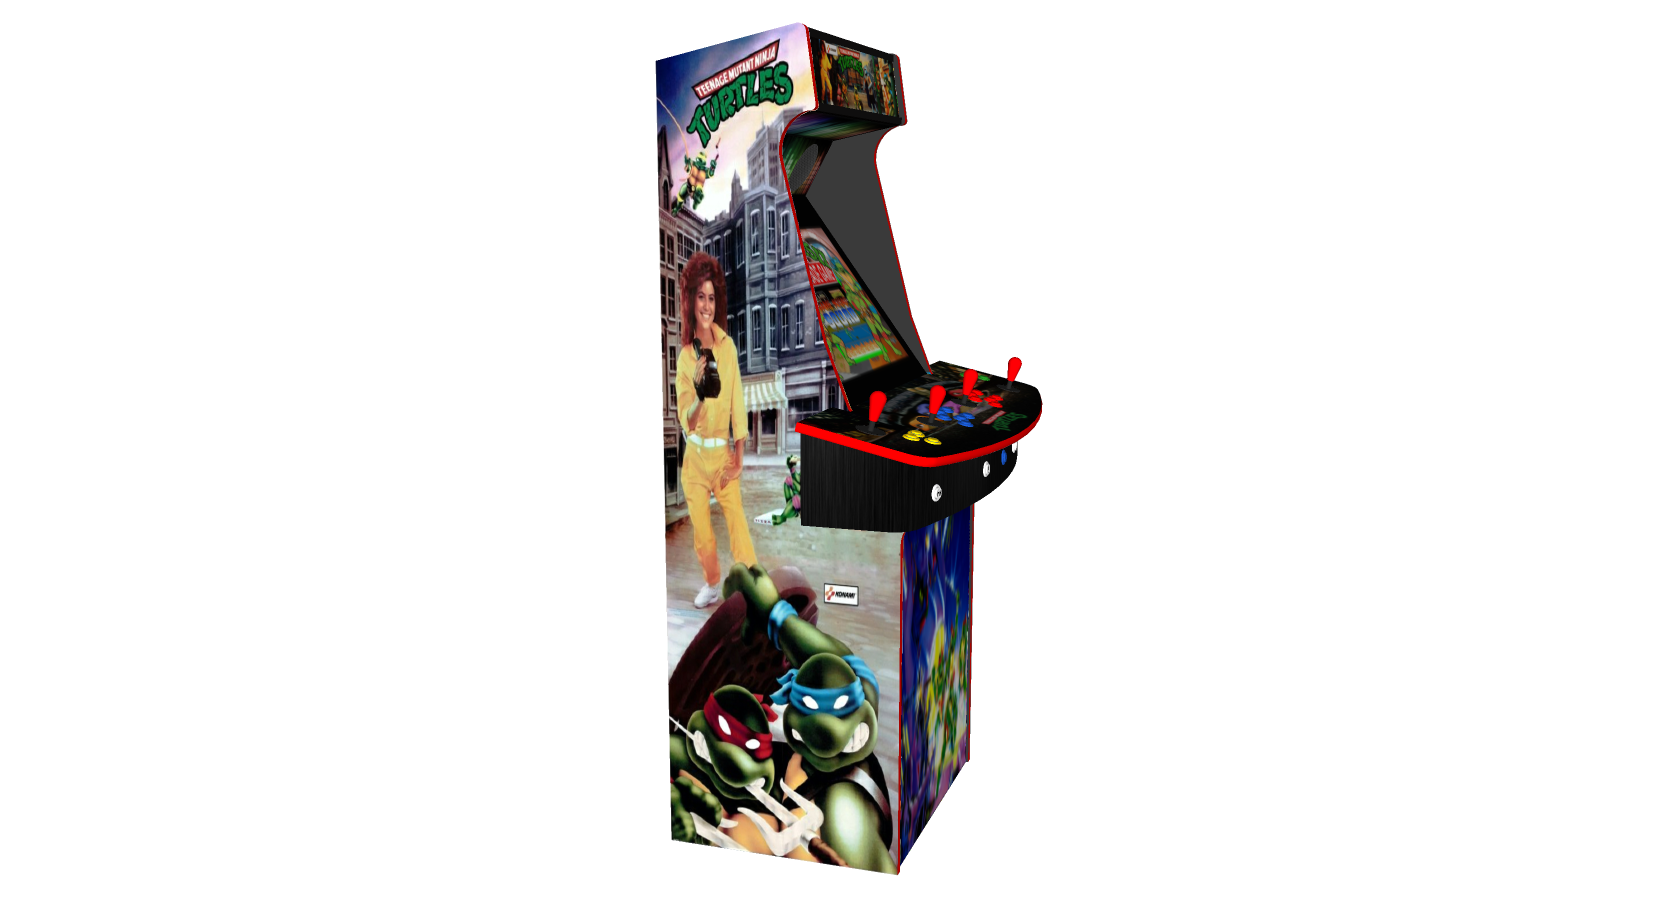 Teenage Mutant Ninja Turtles TMNT - Upright Arcade 4 Player - Left